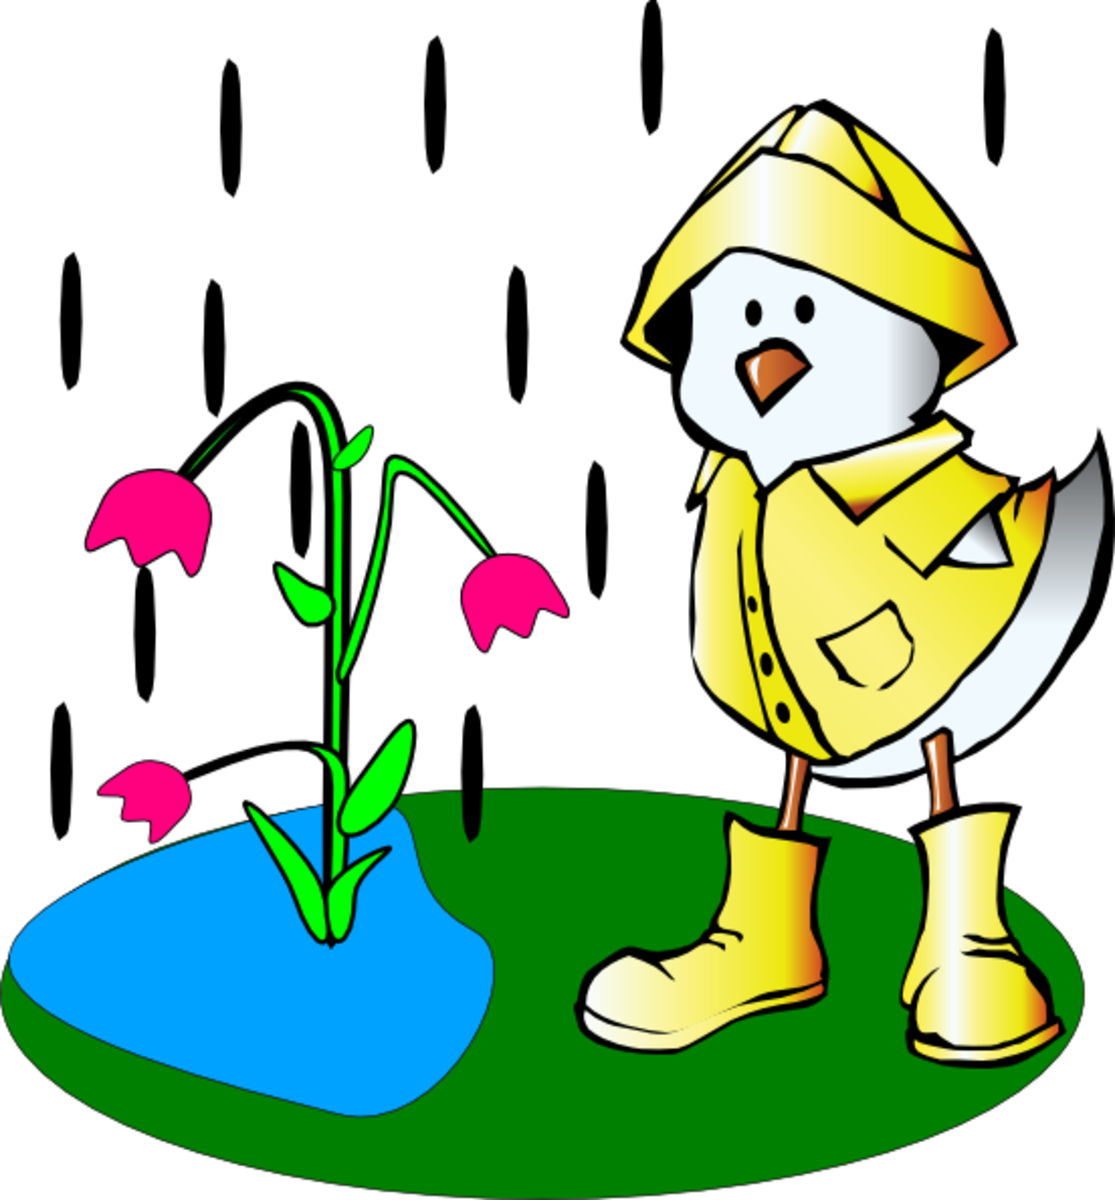 Raining on Cartoon Duck and Tulips